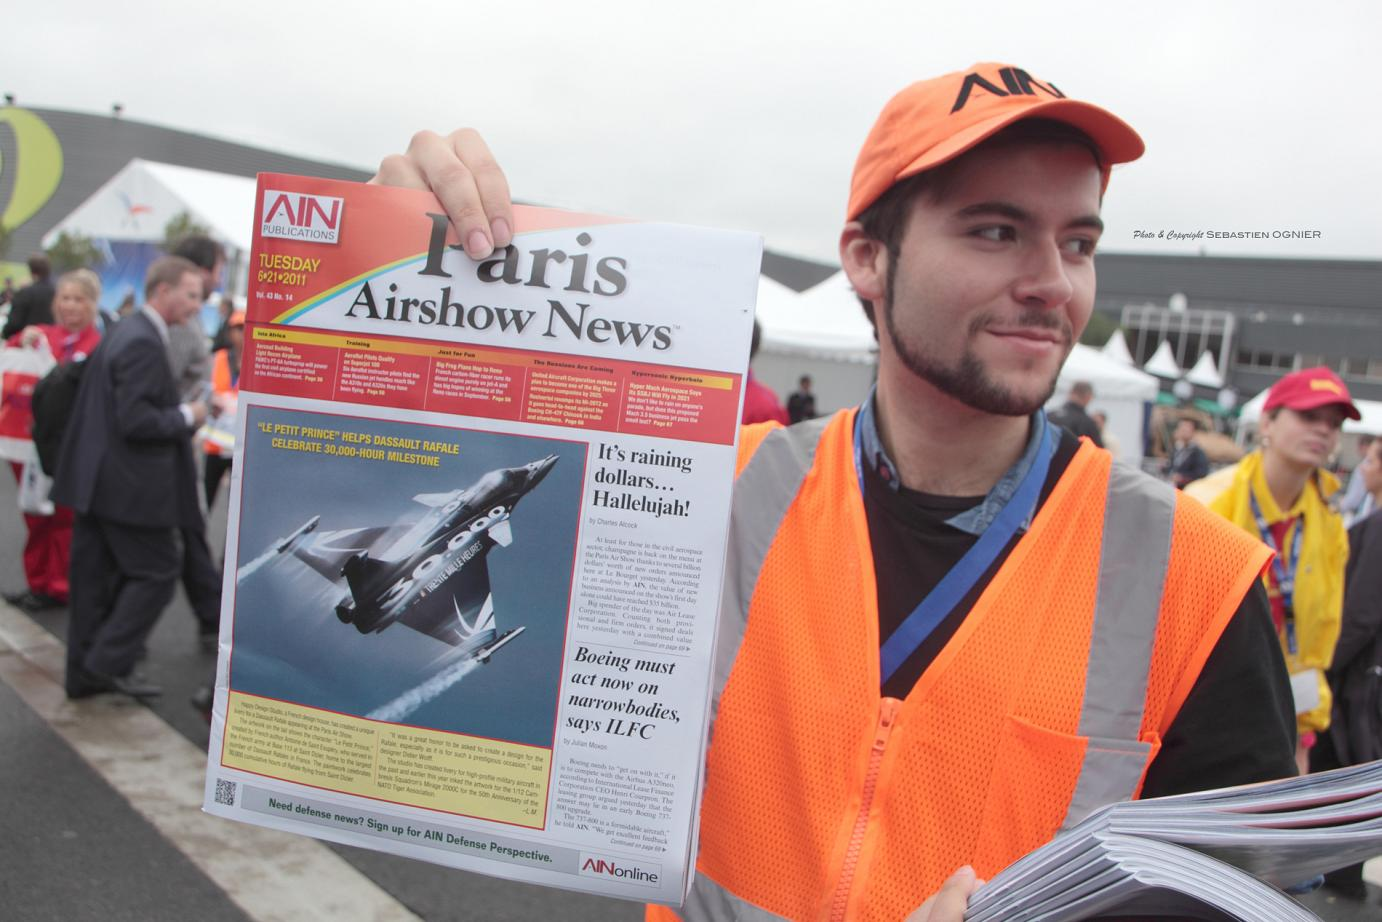 PARIS AIR SHOW NEWS / Photo Sébastien Ognier